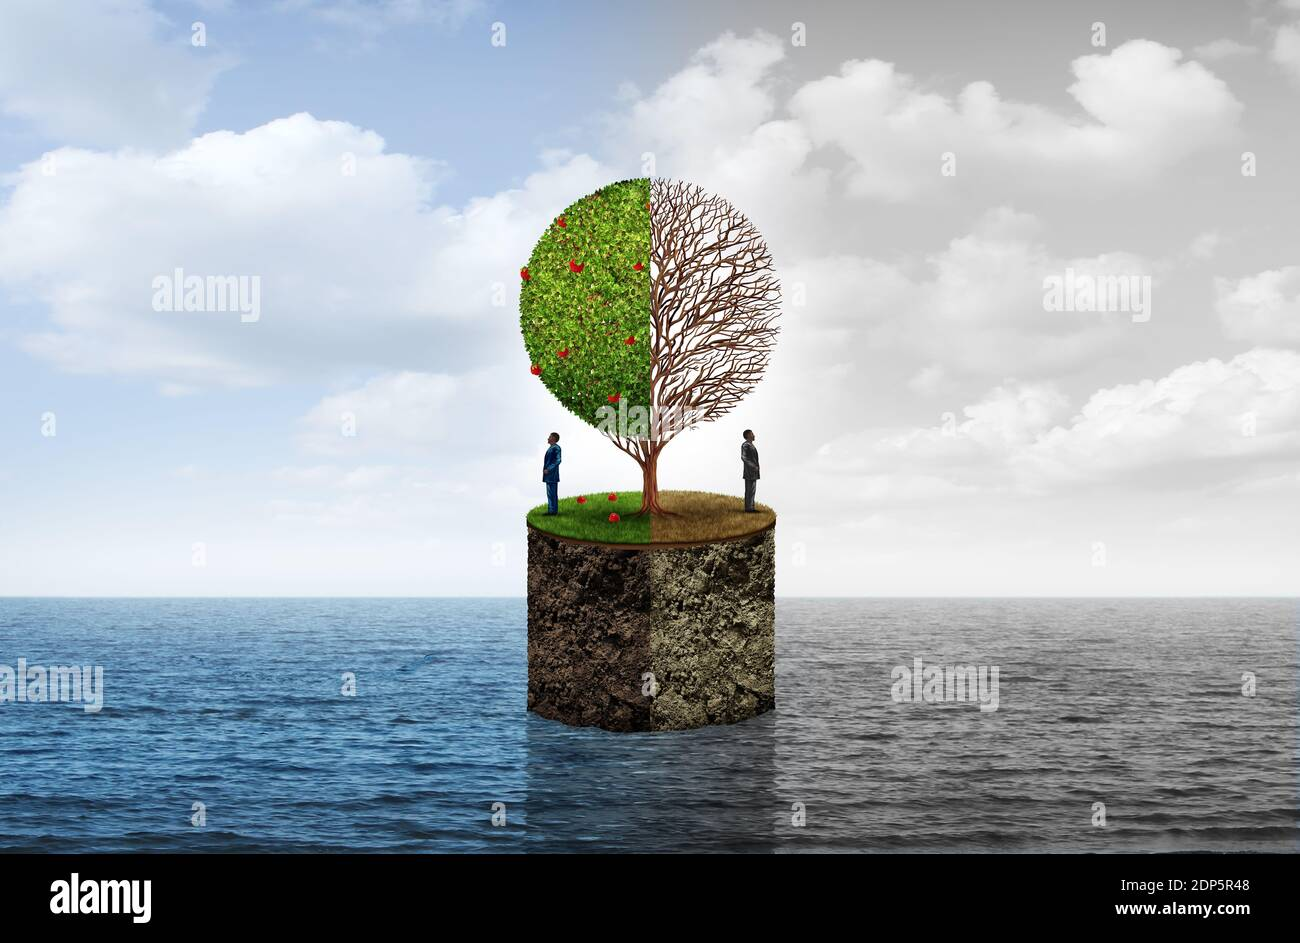 Economic status and socioeconomic class or social financial standing as an economy phase business concept with 3D illustration elements. Stock Photo